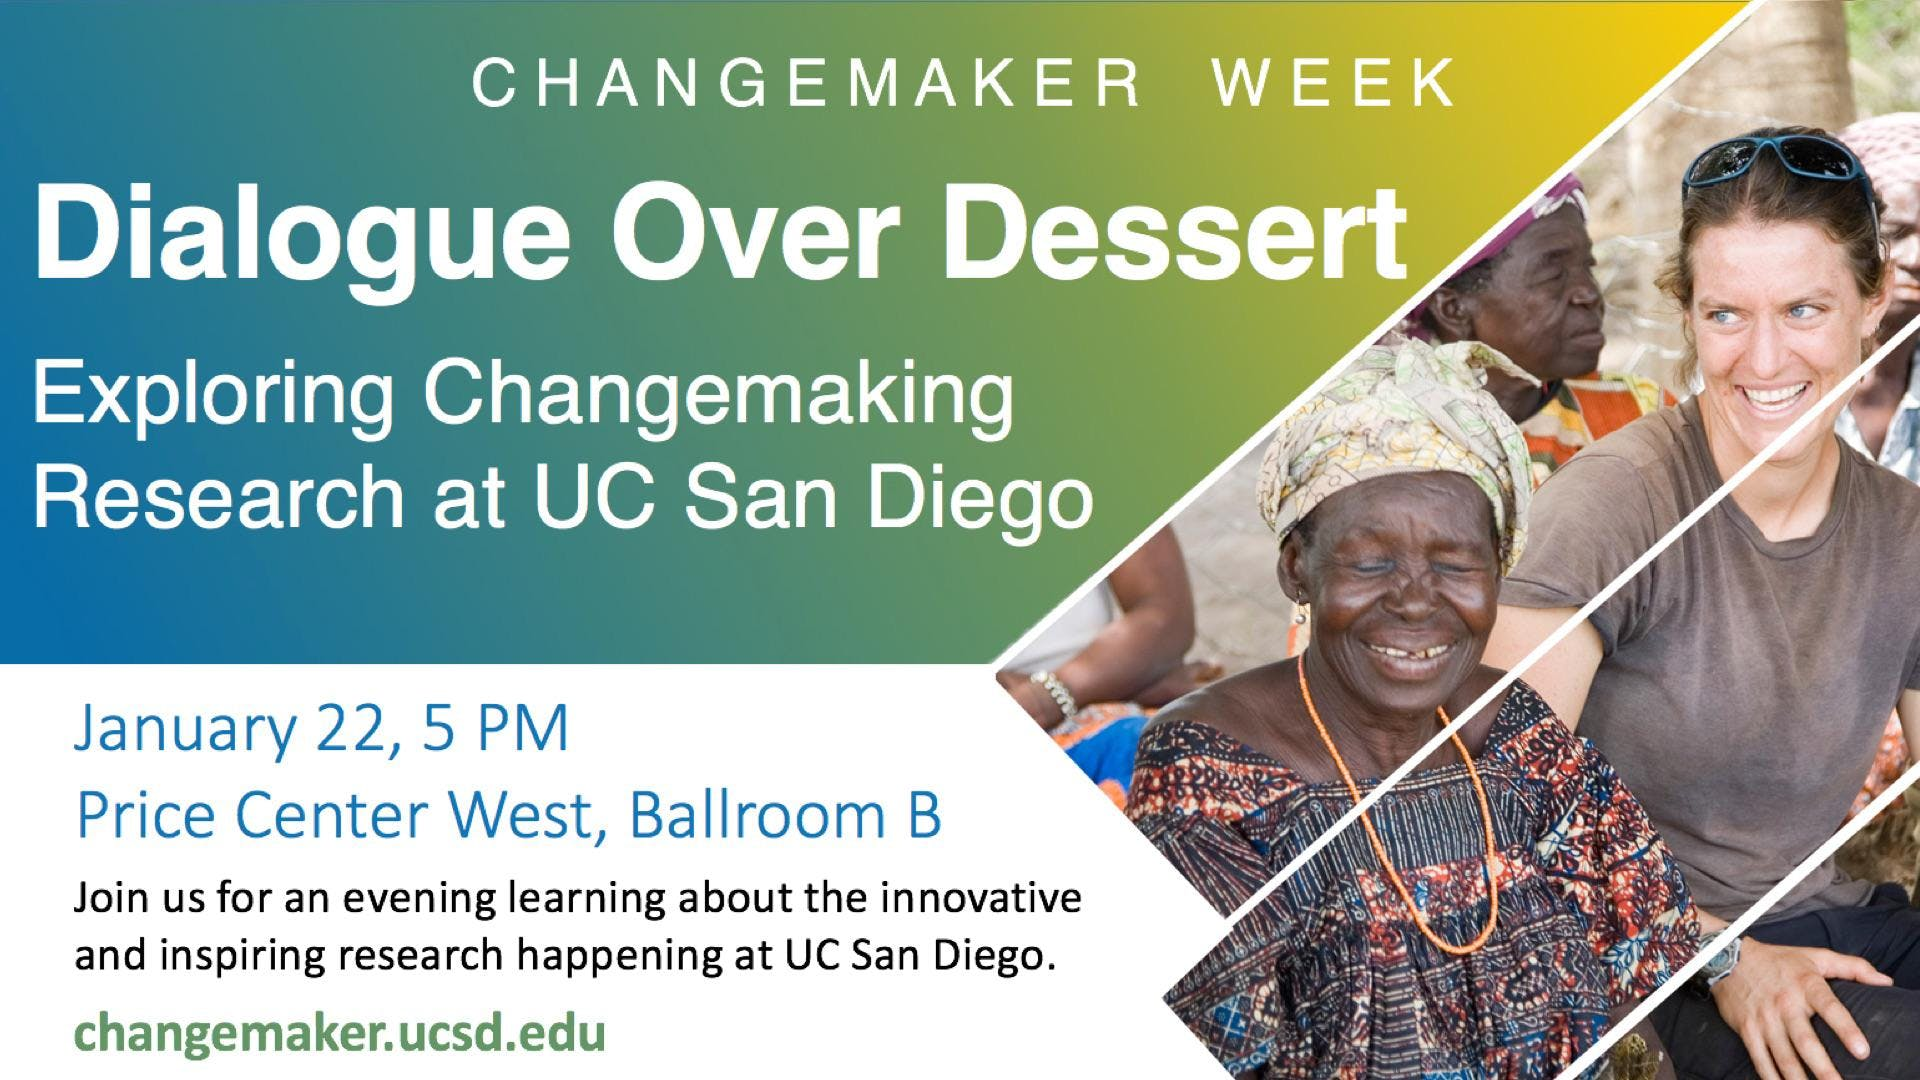 Dialogue over Dessert: Exploring Changemaking Research at UC San Diego